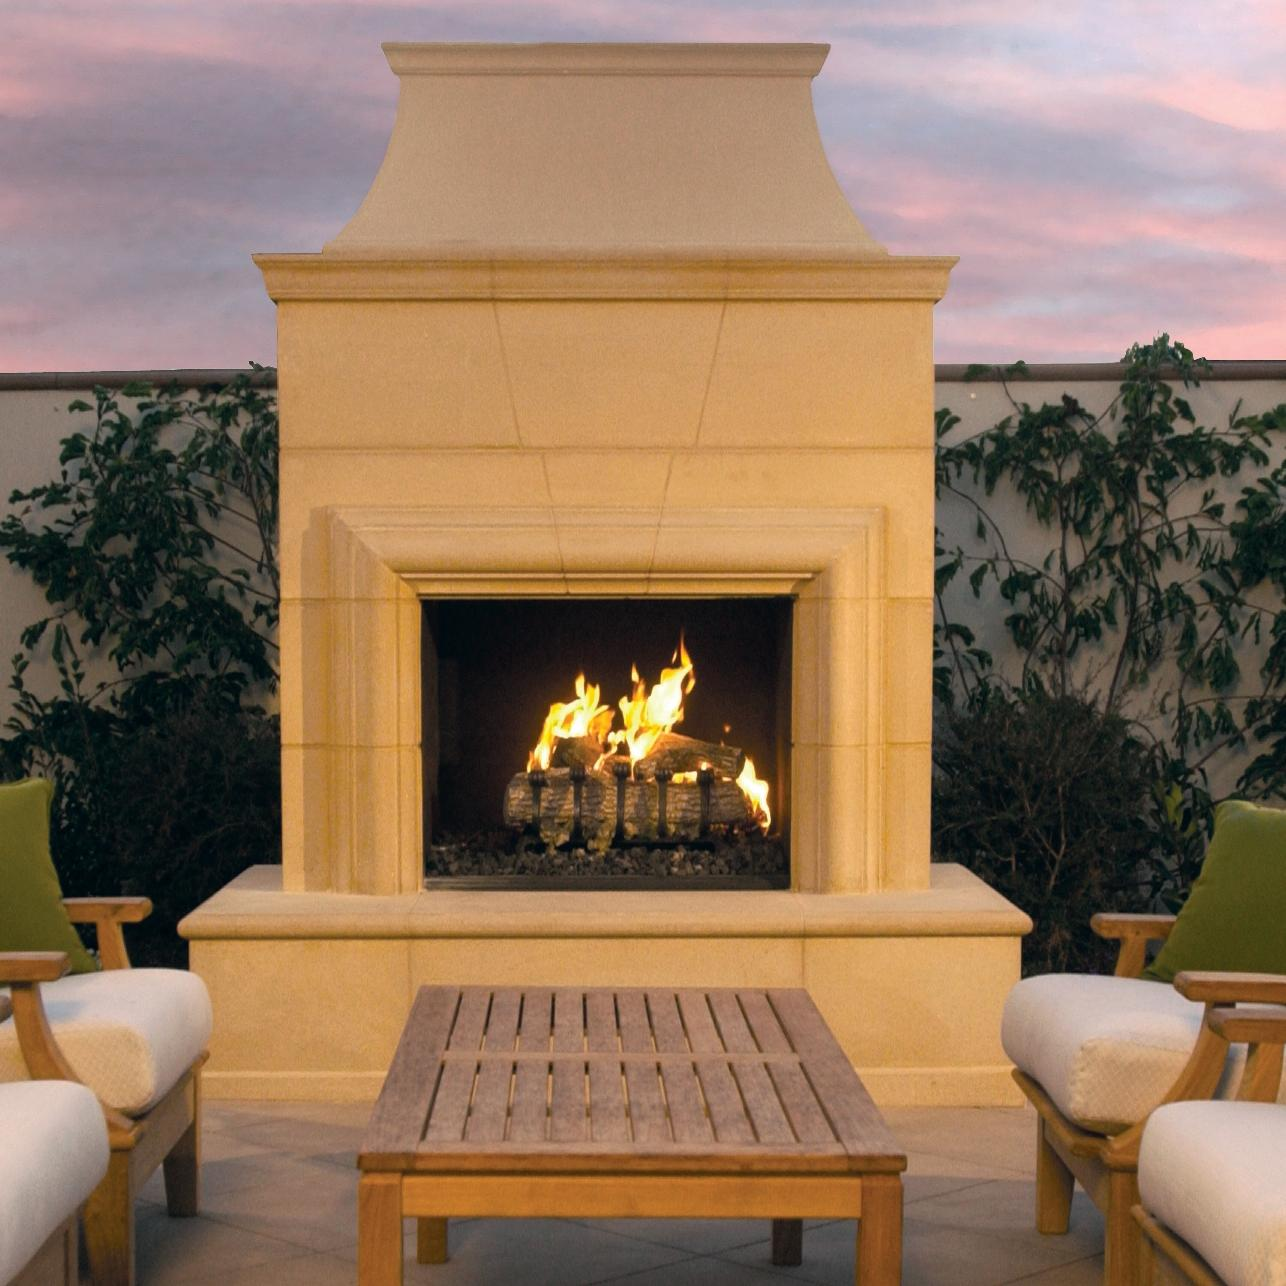 American Fyre Designs Cordova 74-inch Outdoor Natural Gas Fireplace - Cafe Blanco